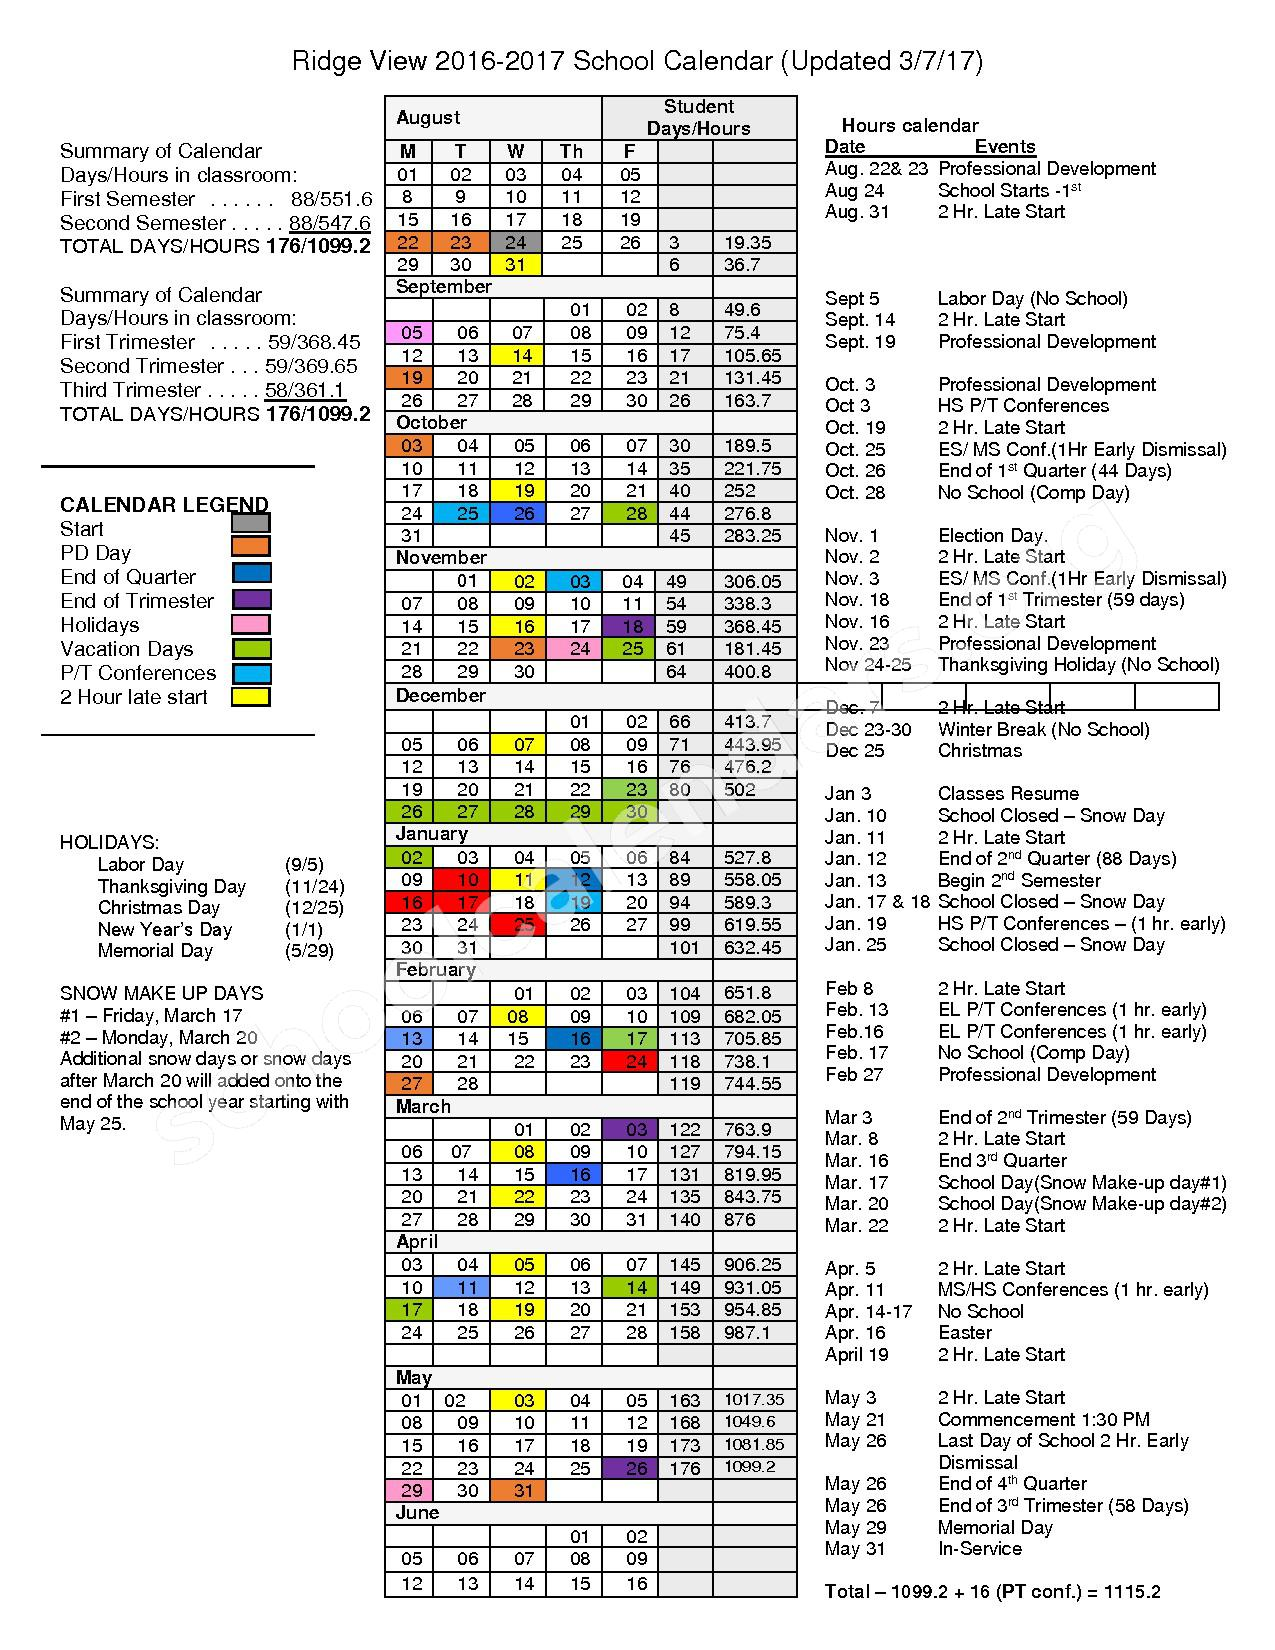 2016 - 2017 School Calendar – Ridge View Community School District – page 1